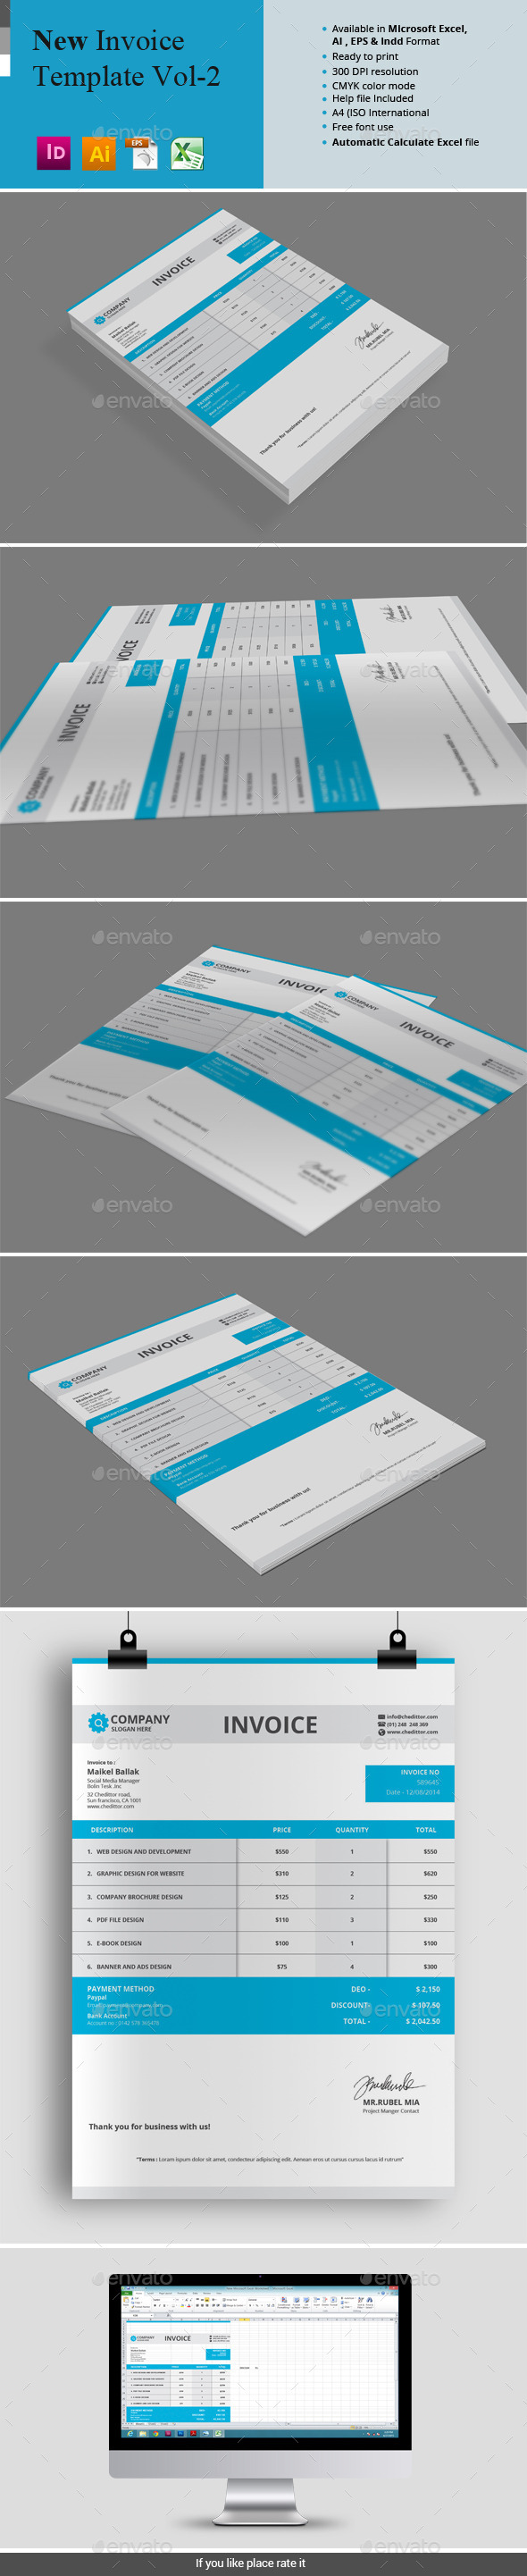 GraphicRiver New Invoice Template Vol-2 11949577